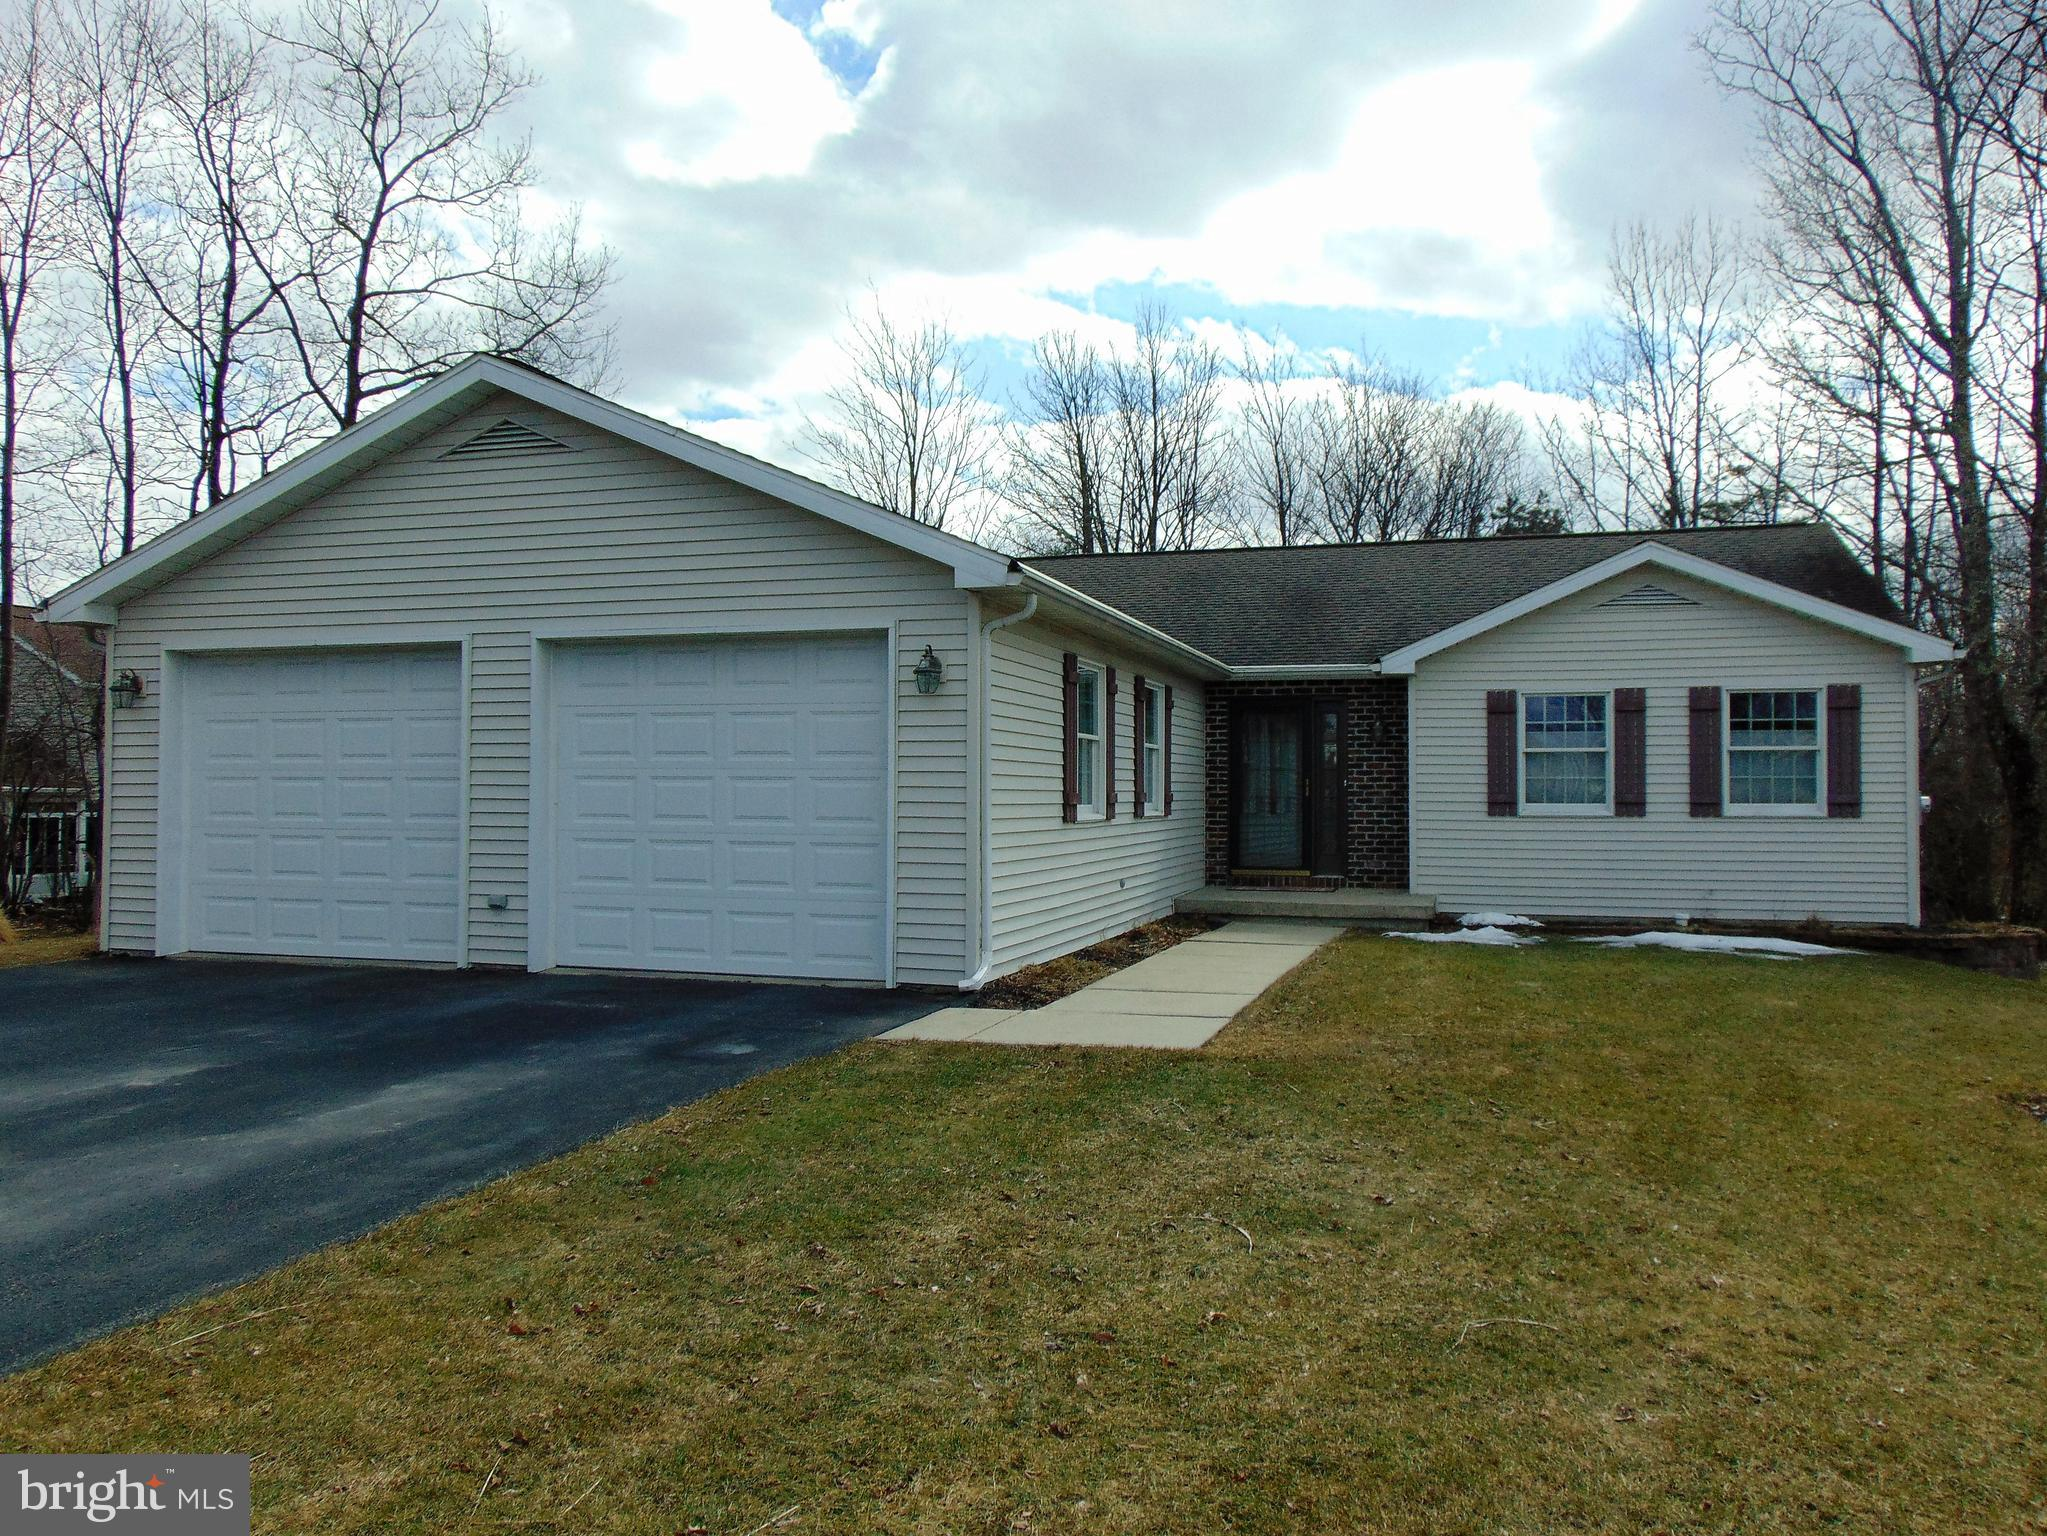 8 ELLIE COURT, FRACKVILLE, PA 17931